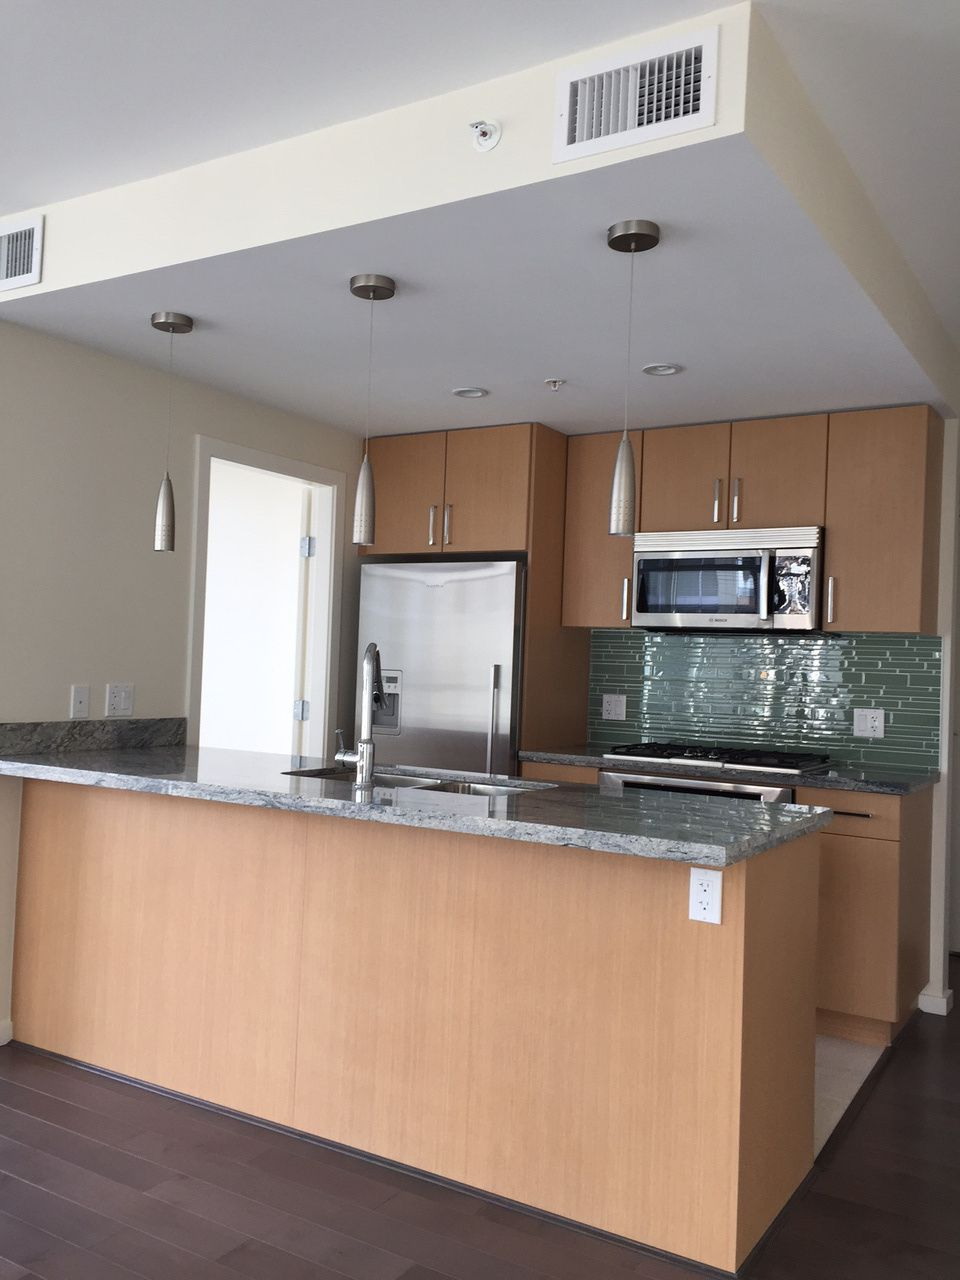 Main Photo: 1104 89 2nd Avenue in Vancouver: False Creek Condo for sale (Vancouver West)